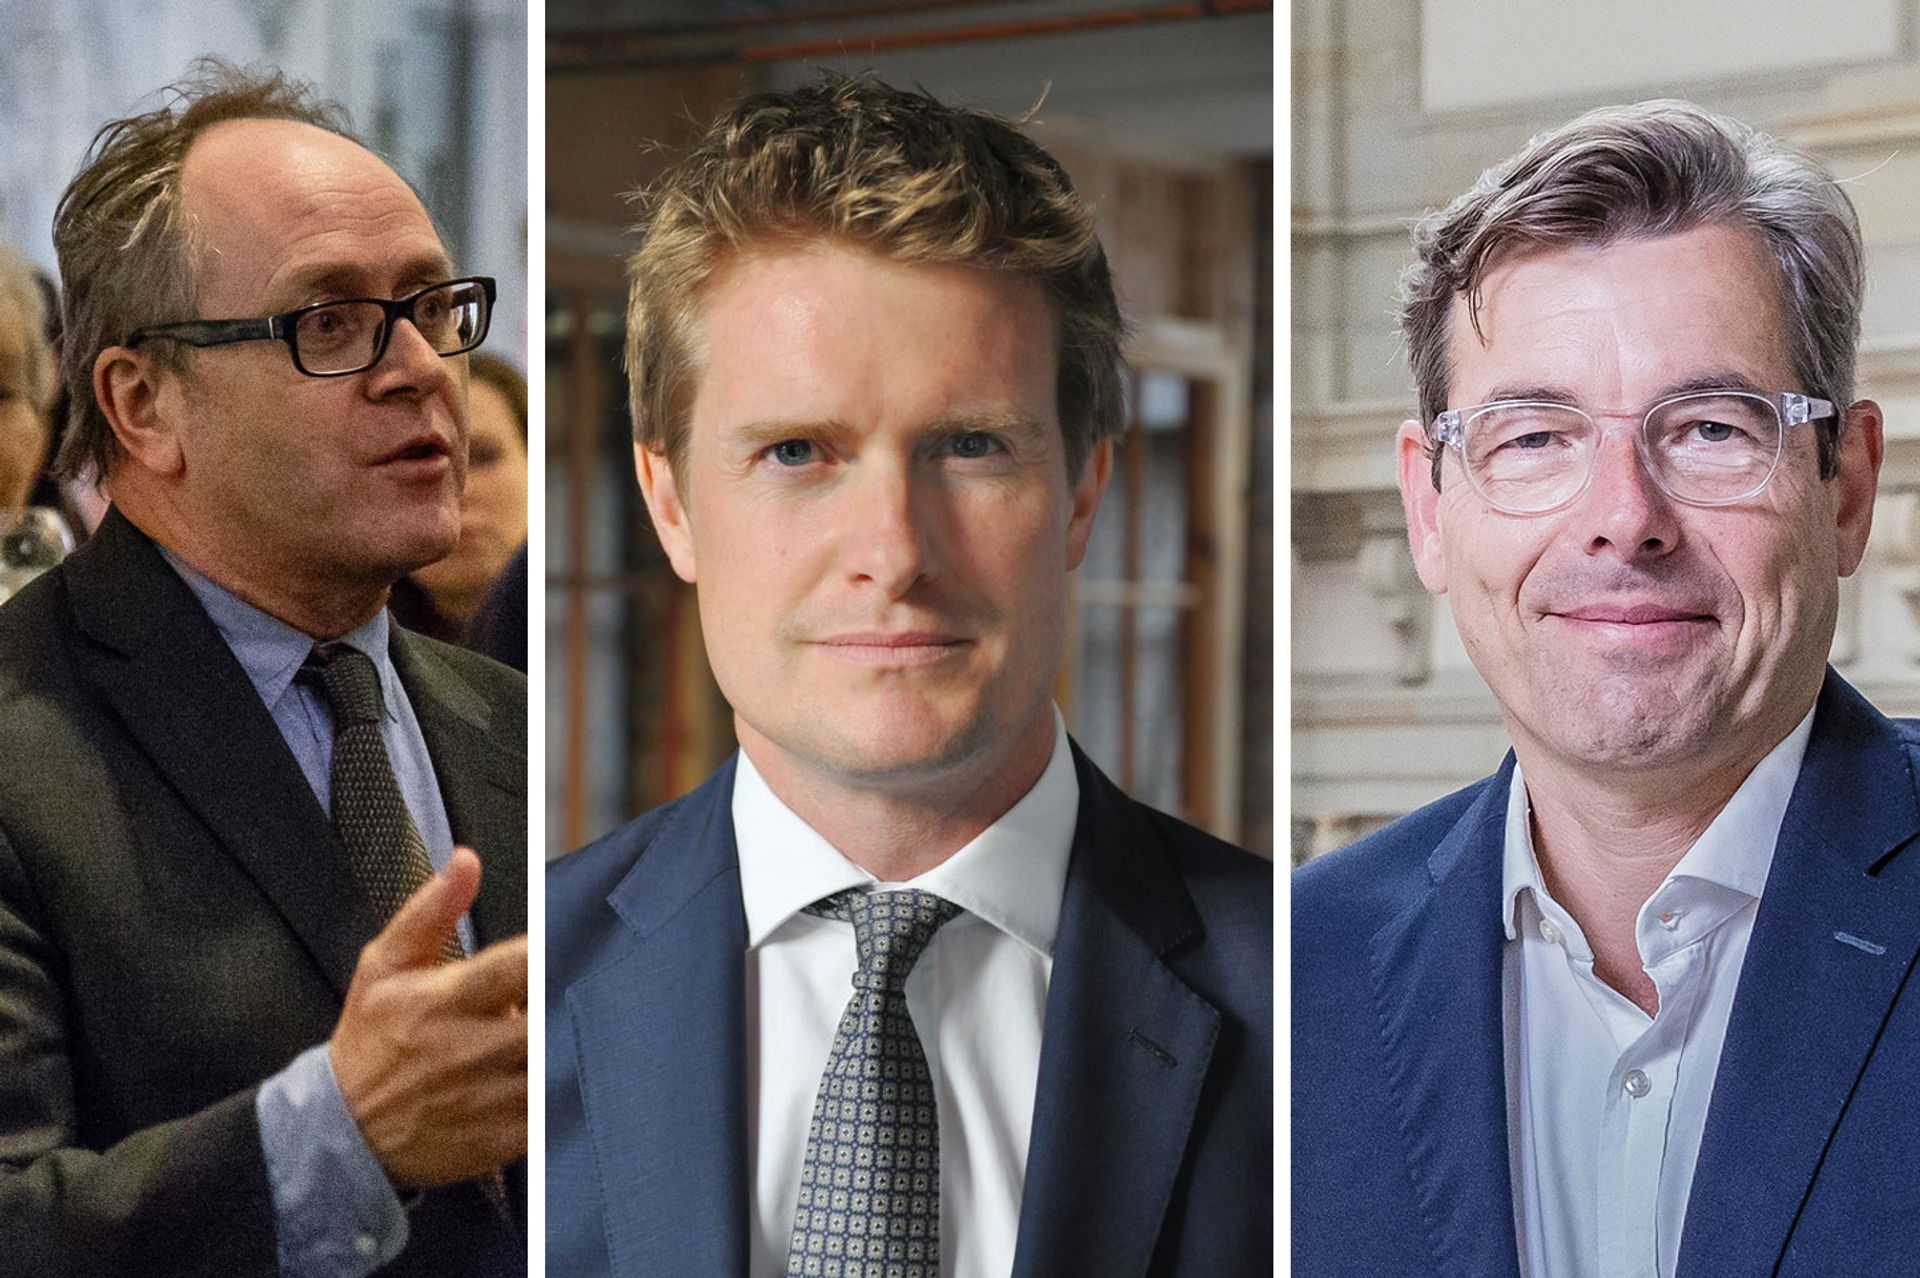 Nicholas Thomas, director of the Museum of Archaeology and Anthropology in Cambridge, Tristram Hunt, director of the V&A, Hartmut Dorgerloh, general director of the Humboldt Forum in Berlin